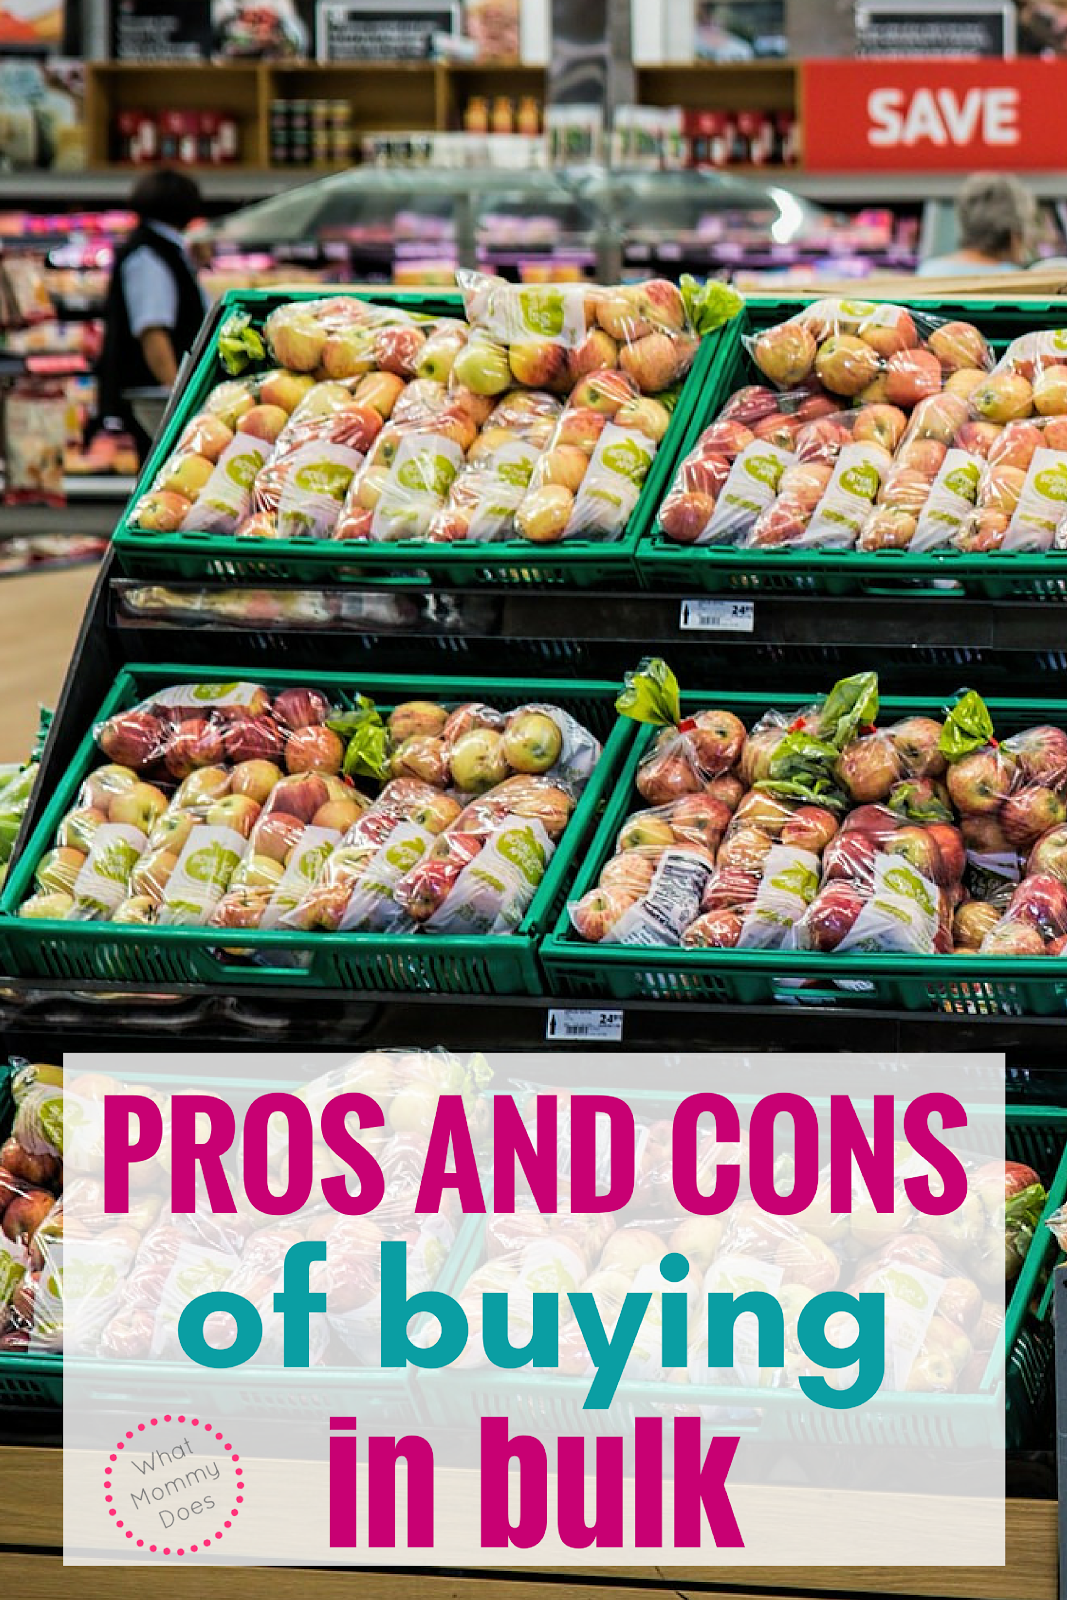 Are you really saving money when you are buying bulk food. Take a look at the pros and cons of buying in bulk. It's not as great as you think!